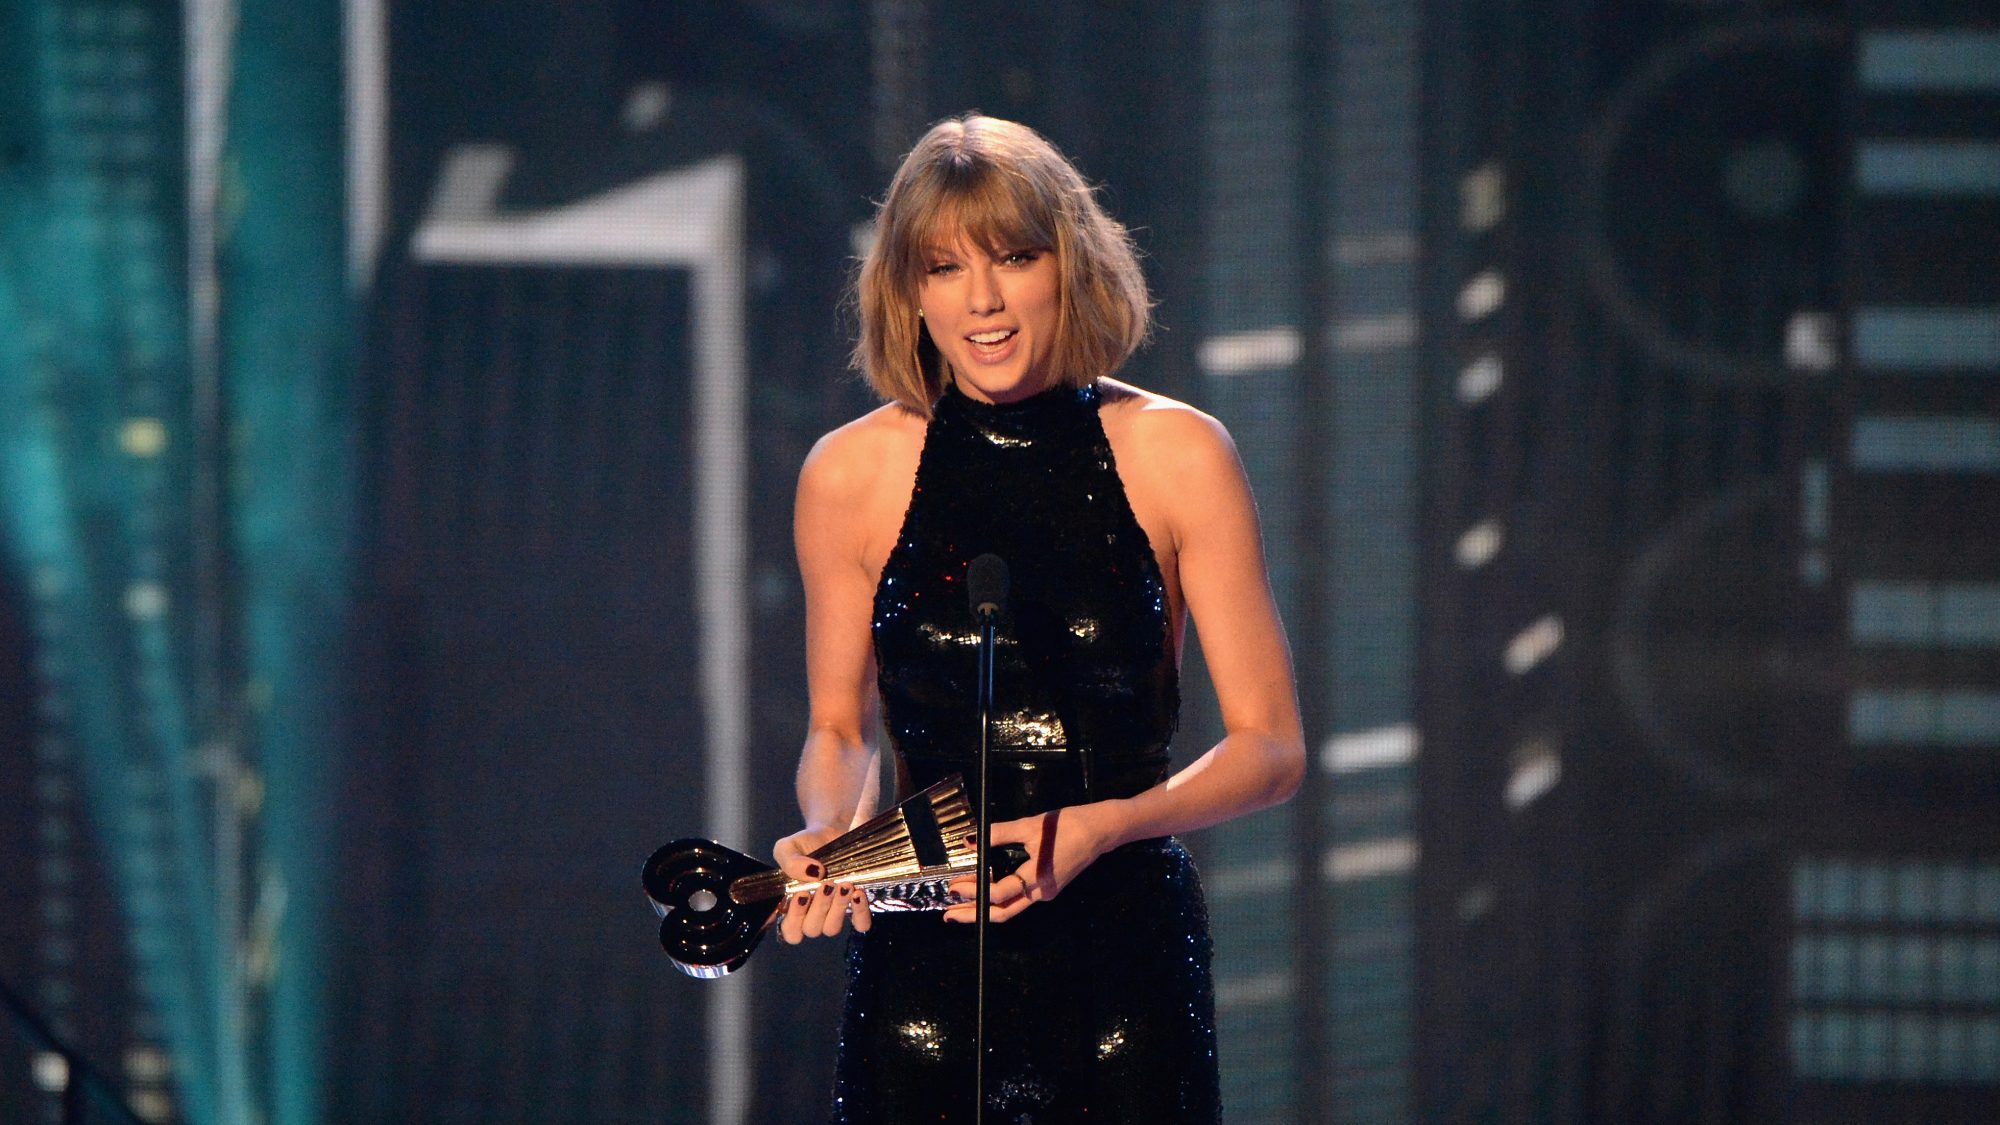 Taylor Swift's Preferred Cocktail is Vodka and Diet Coke